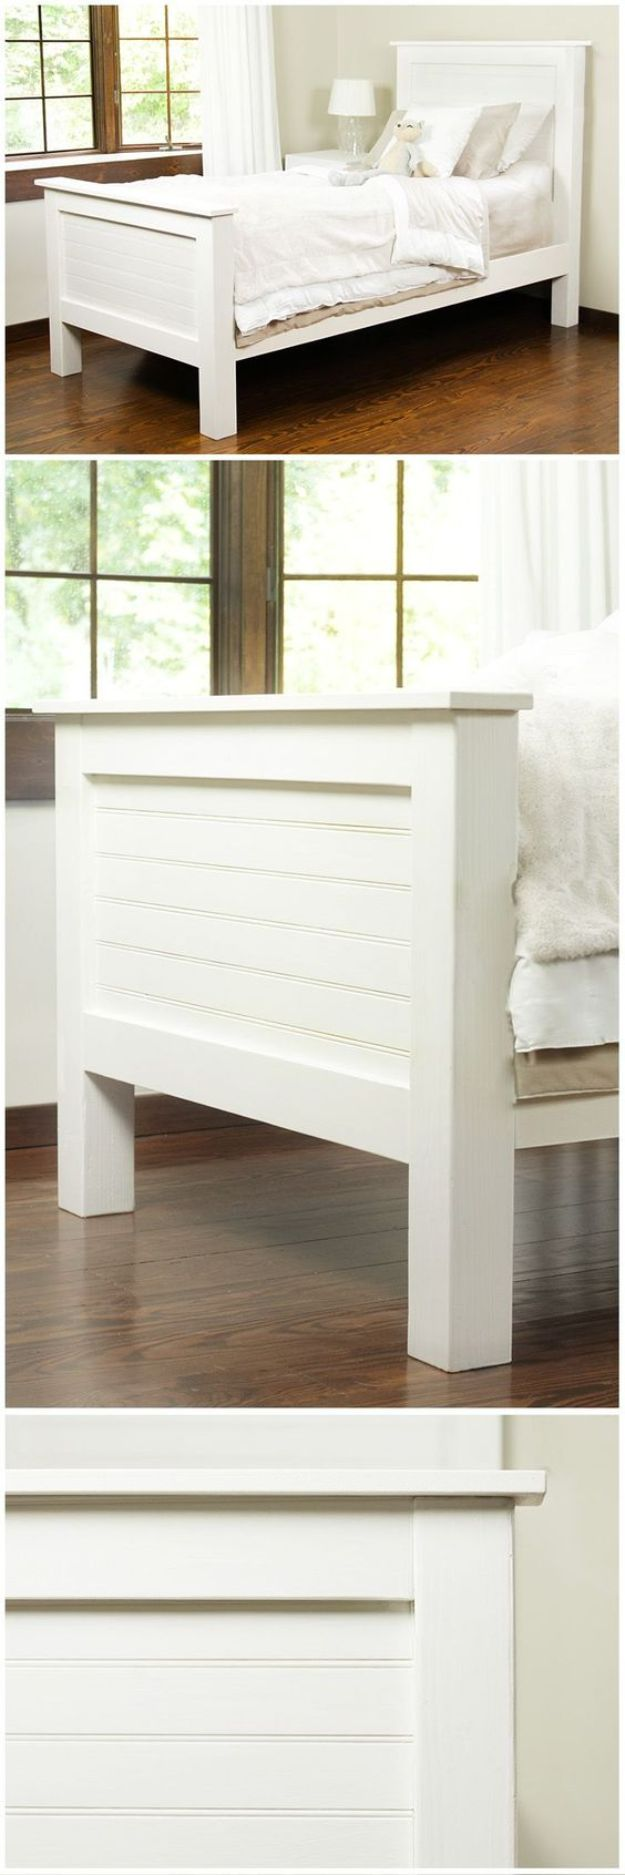 DIY Bed Frames - DIY Bed Frame From Tongue and Groove Planks - How To Make a Headboard - Do It Yourself Projects for Platform Beds, Twin, King, Queen and Full Bed - Kids Rooms, Drawers and Storage Units, Bookshelf - Rustic, Farmhouse Style Furniture For Your Bedroom, Modern Decor, Cheap and Easy Ways to Make a Bed With Step by Step Tutorial and Free Plans http://diyjoy.com/diy-bed-frames